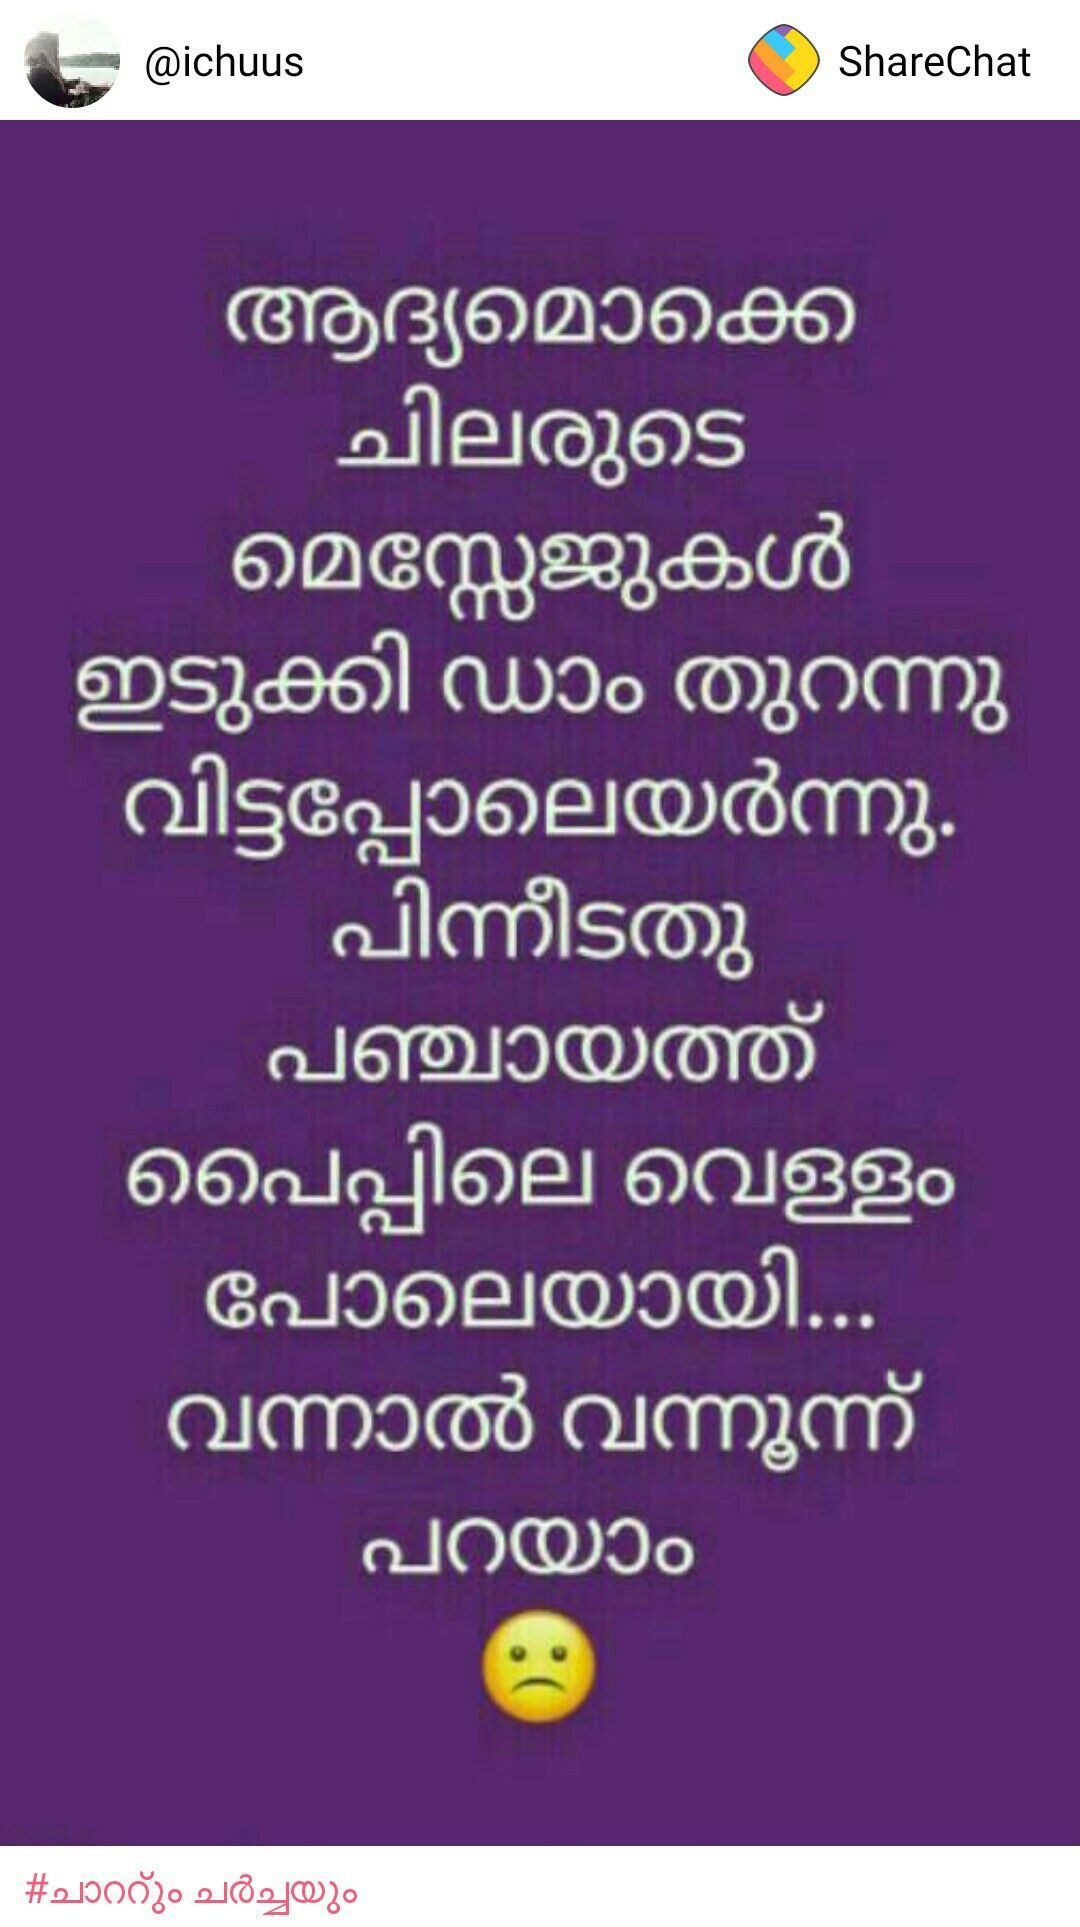 Pin By Siny Varghese On Frand Good Morning Wishes Life Quotes Funny Quotes